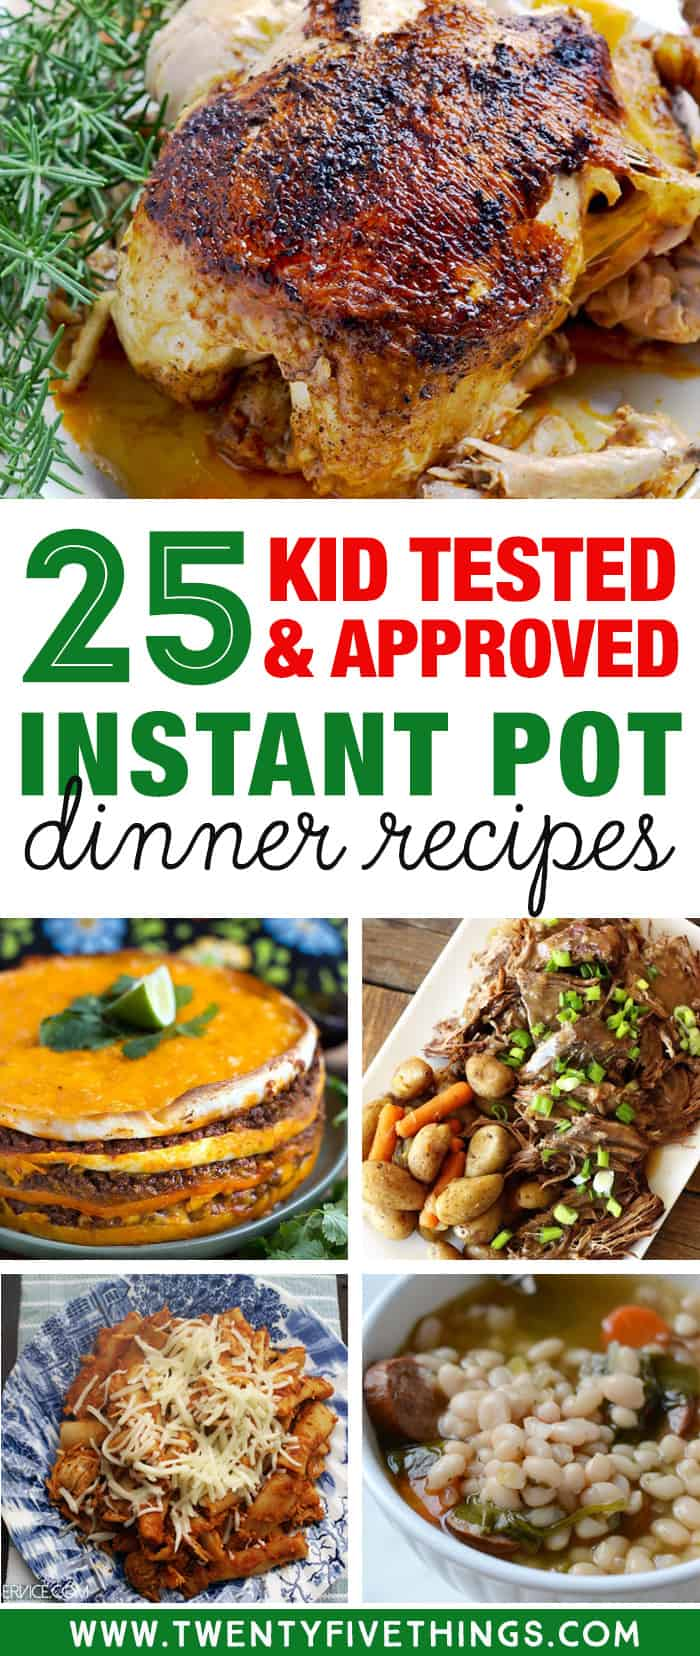 Get some delicious dinner ideas for this week using your Instant Pot. These are all kid friendly instant pot recipes for dinner.